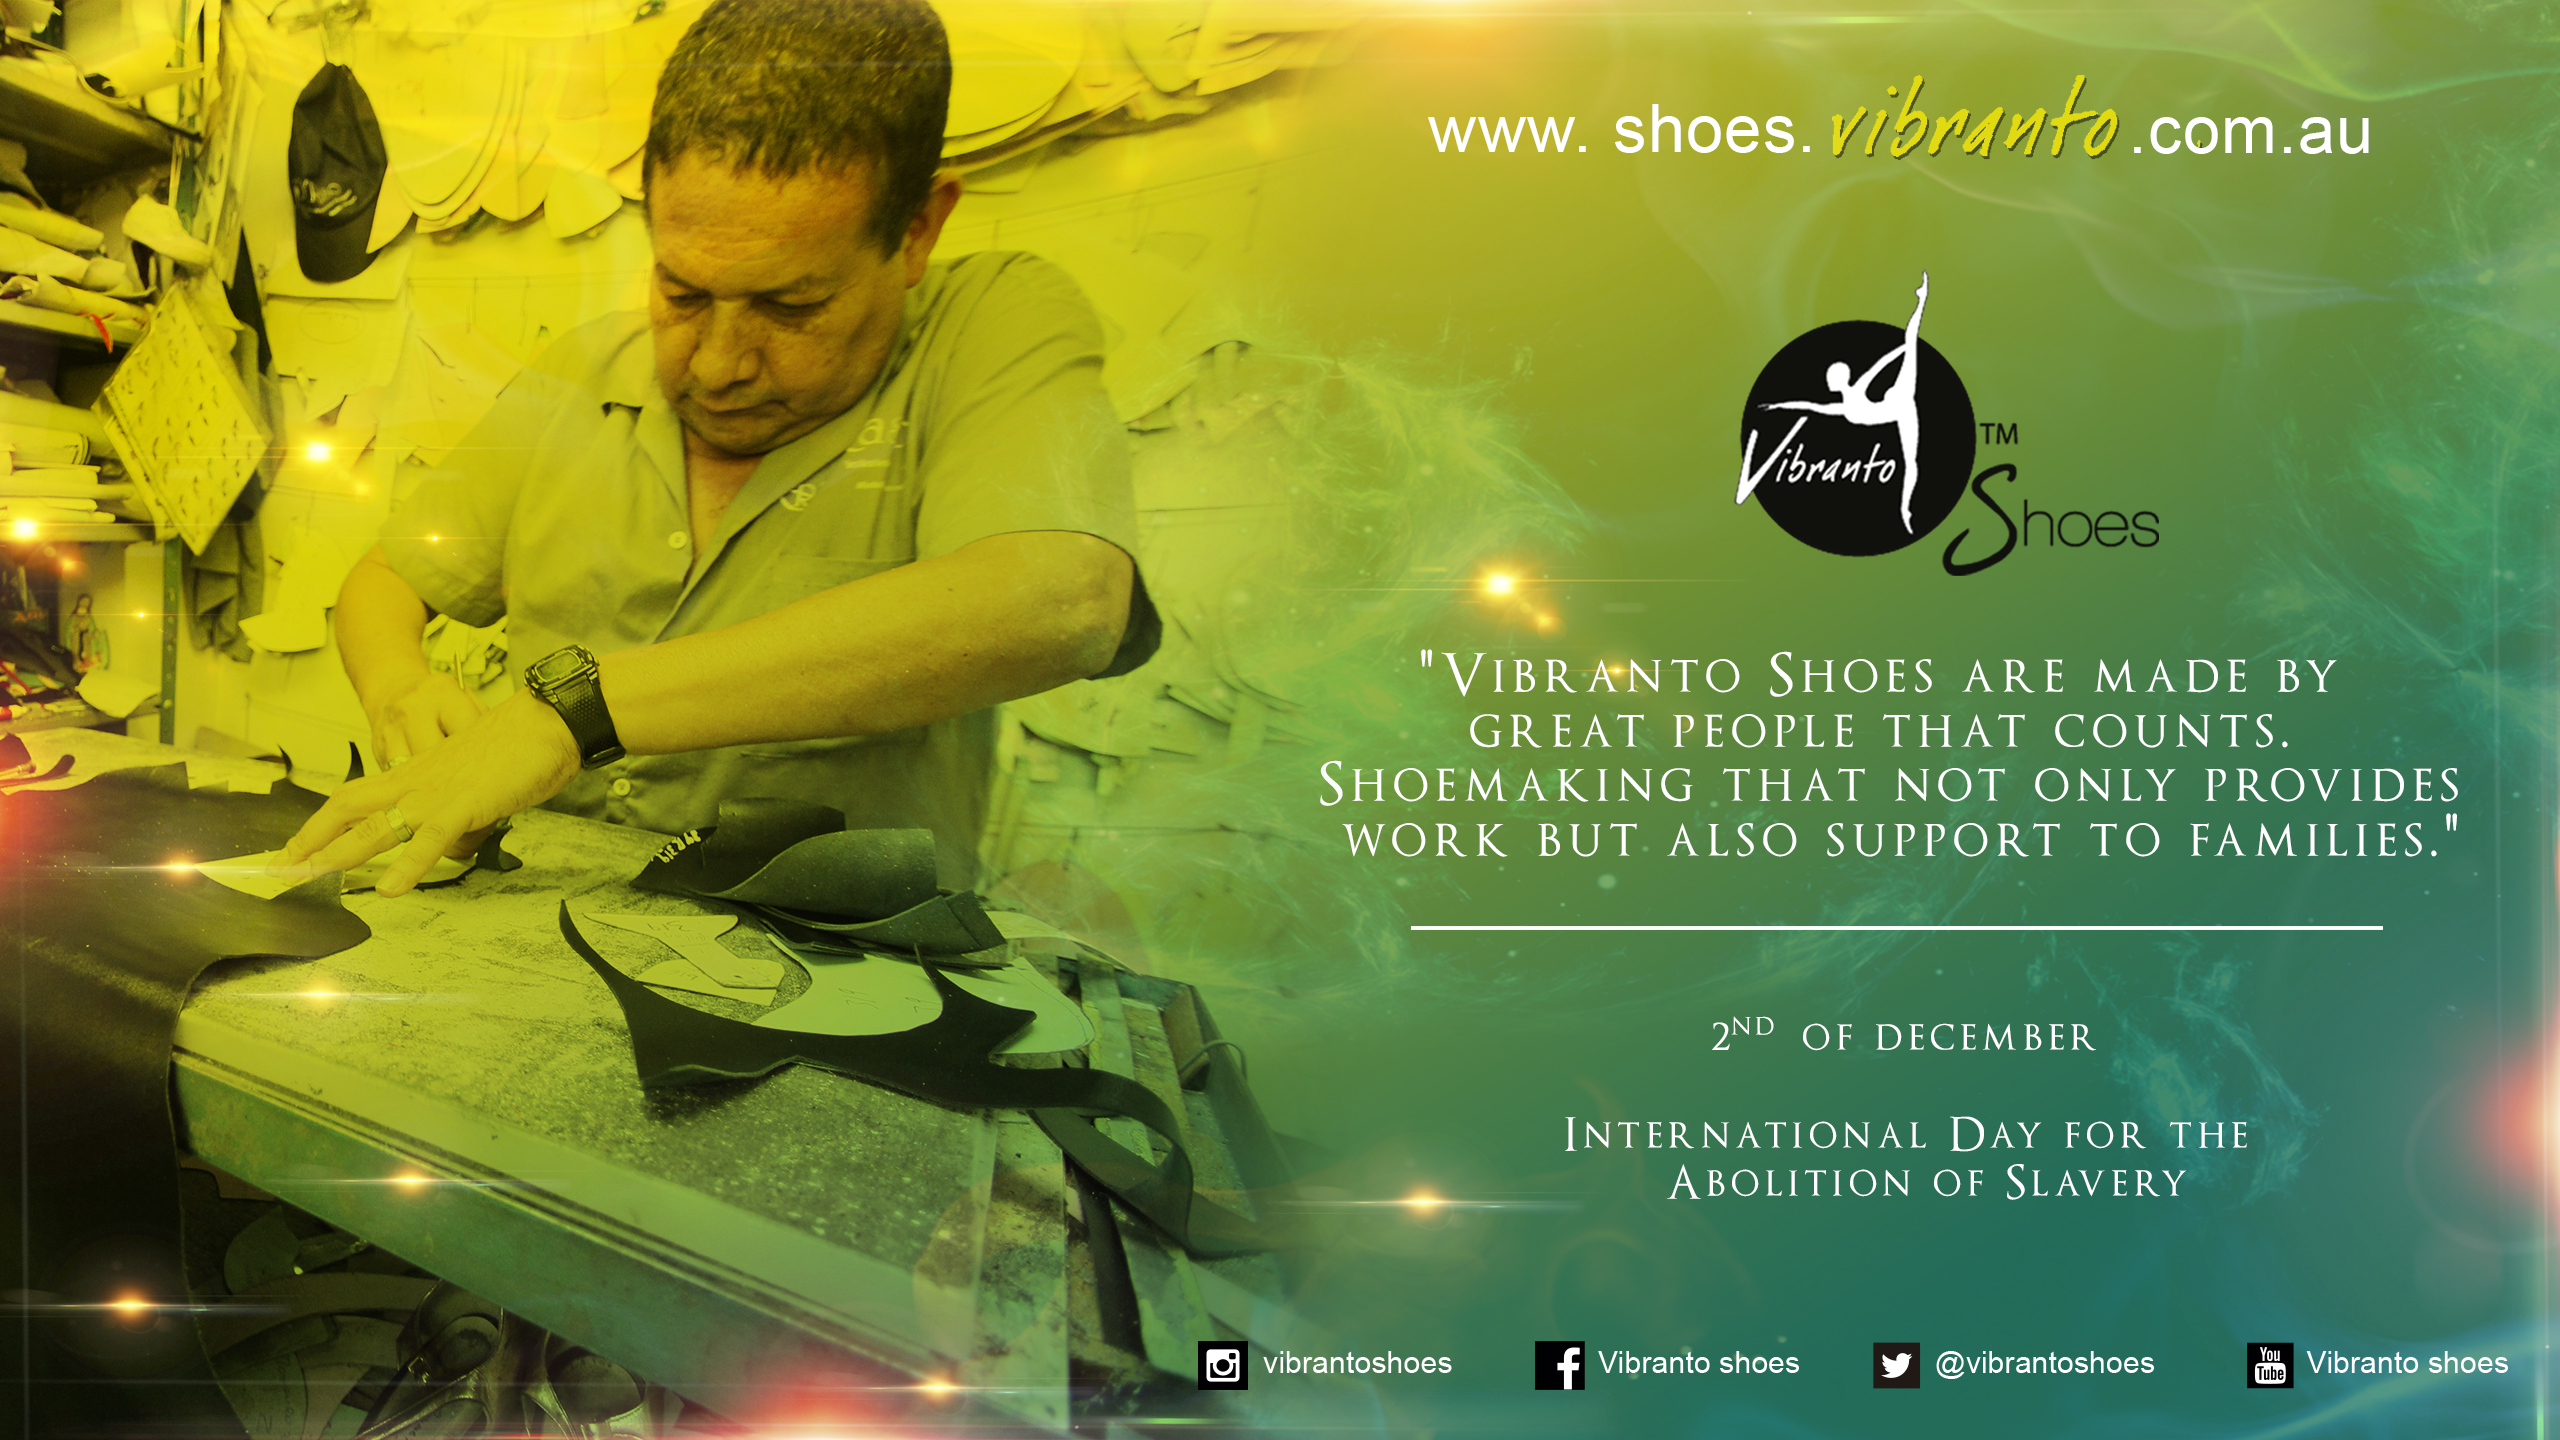 Vibranto Shoes are handmade under ethical manufacturing practices